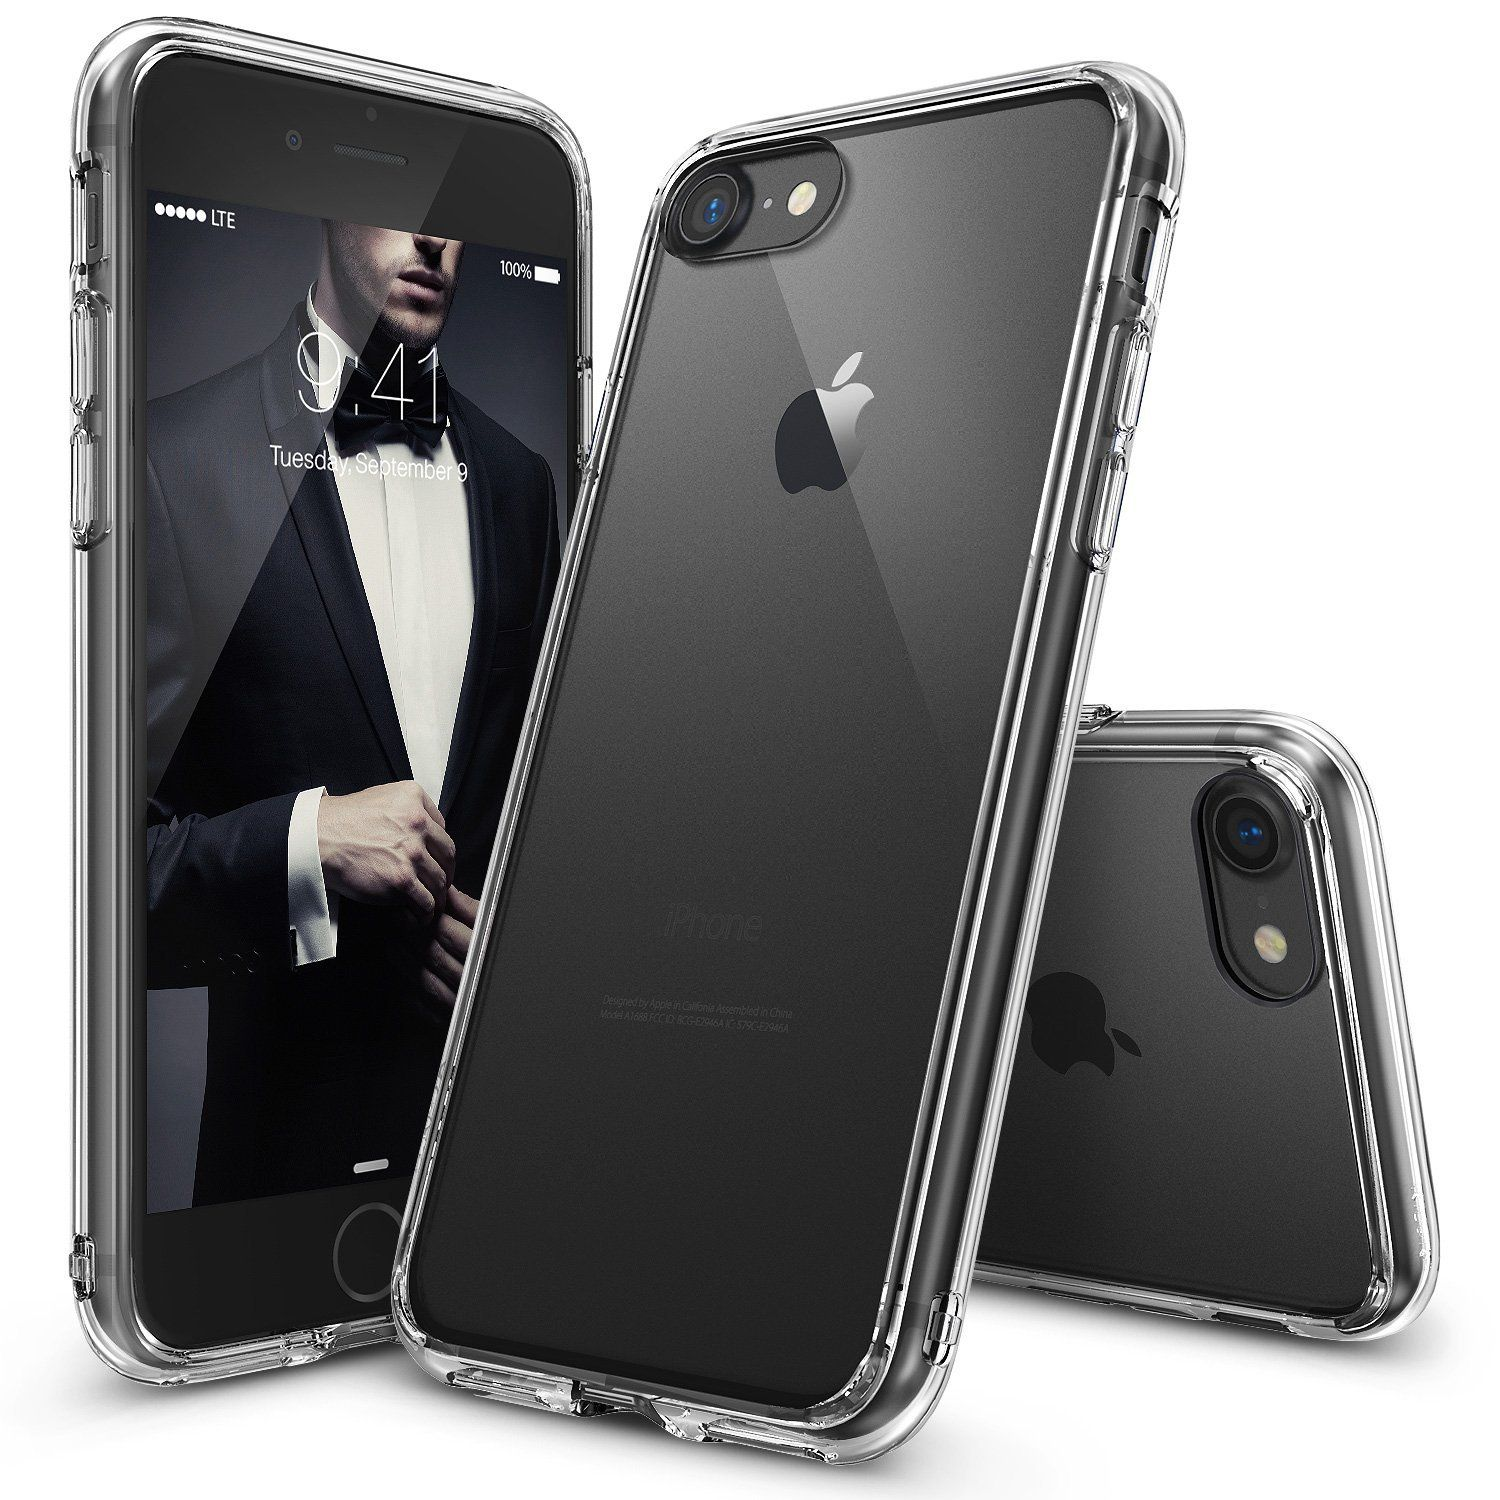 free shipping 66549 a32bf IPhone 7 Case, JETech Apple IPhone 7 Case Cover Shock-Absorption ...